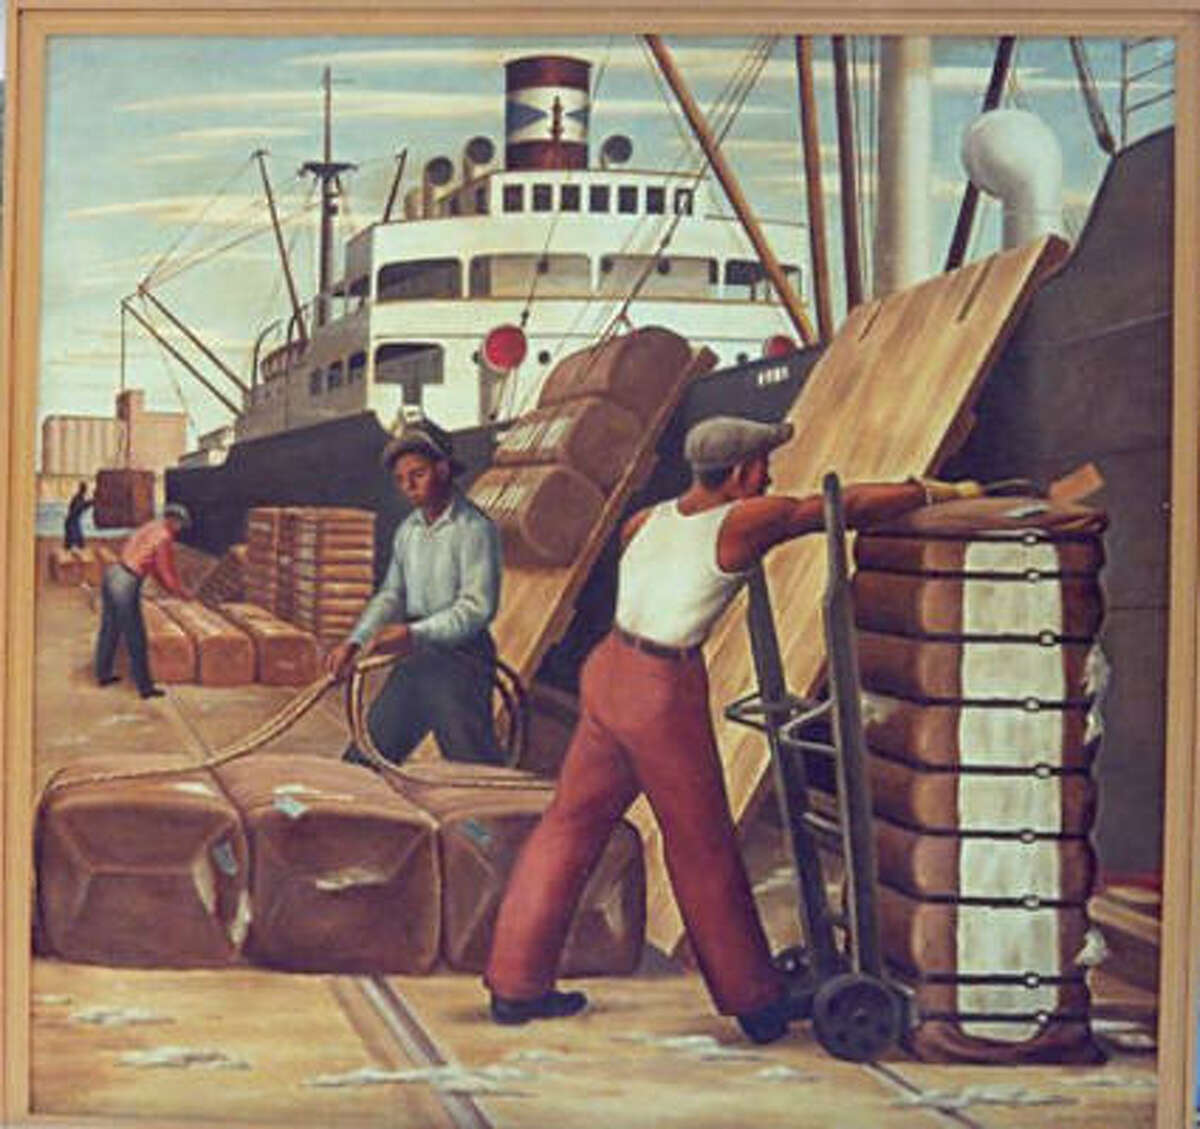 Loading Cotton by Jerry Bywaters